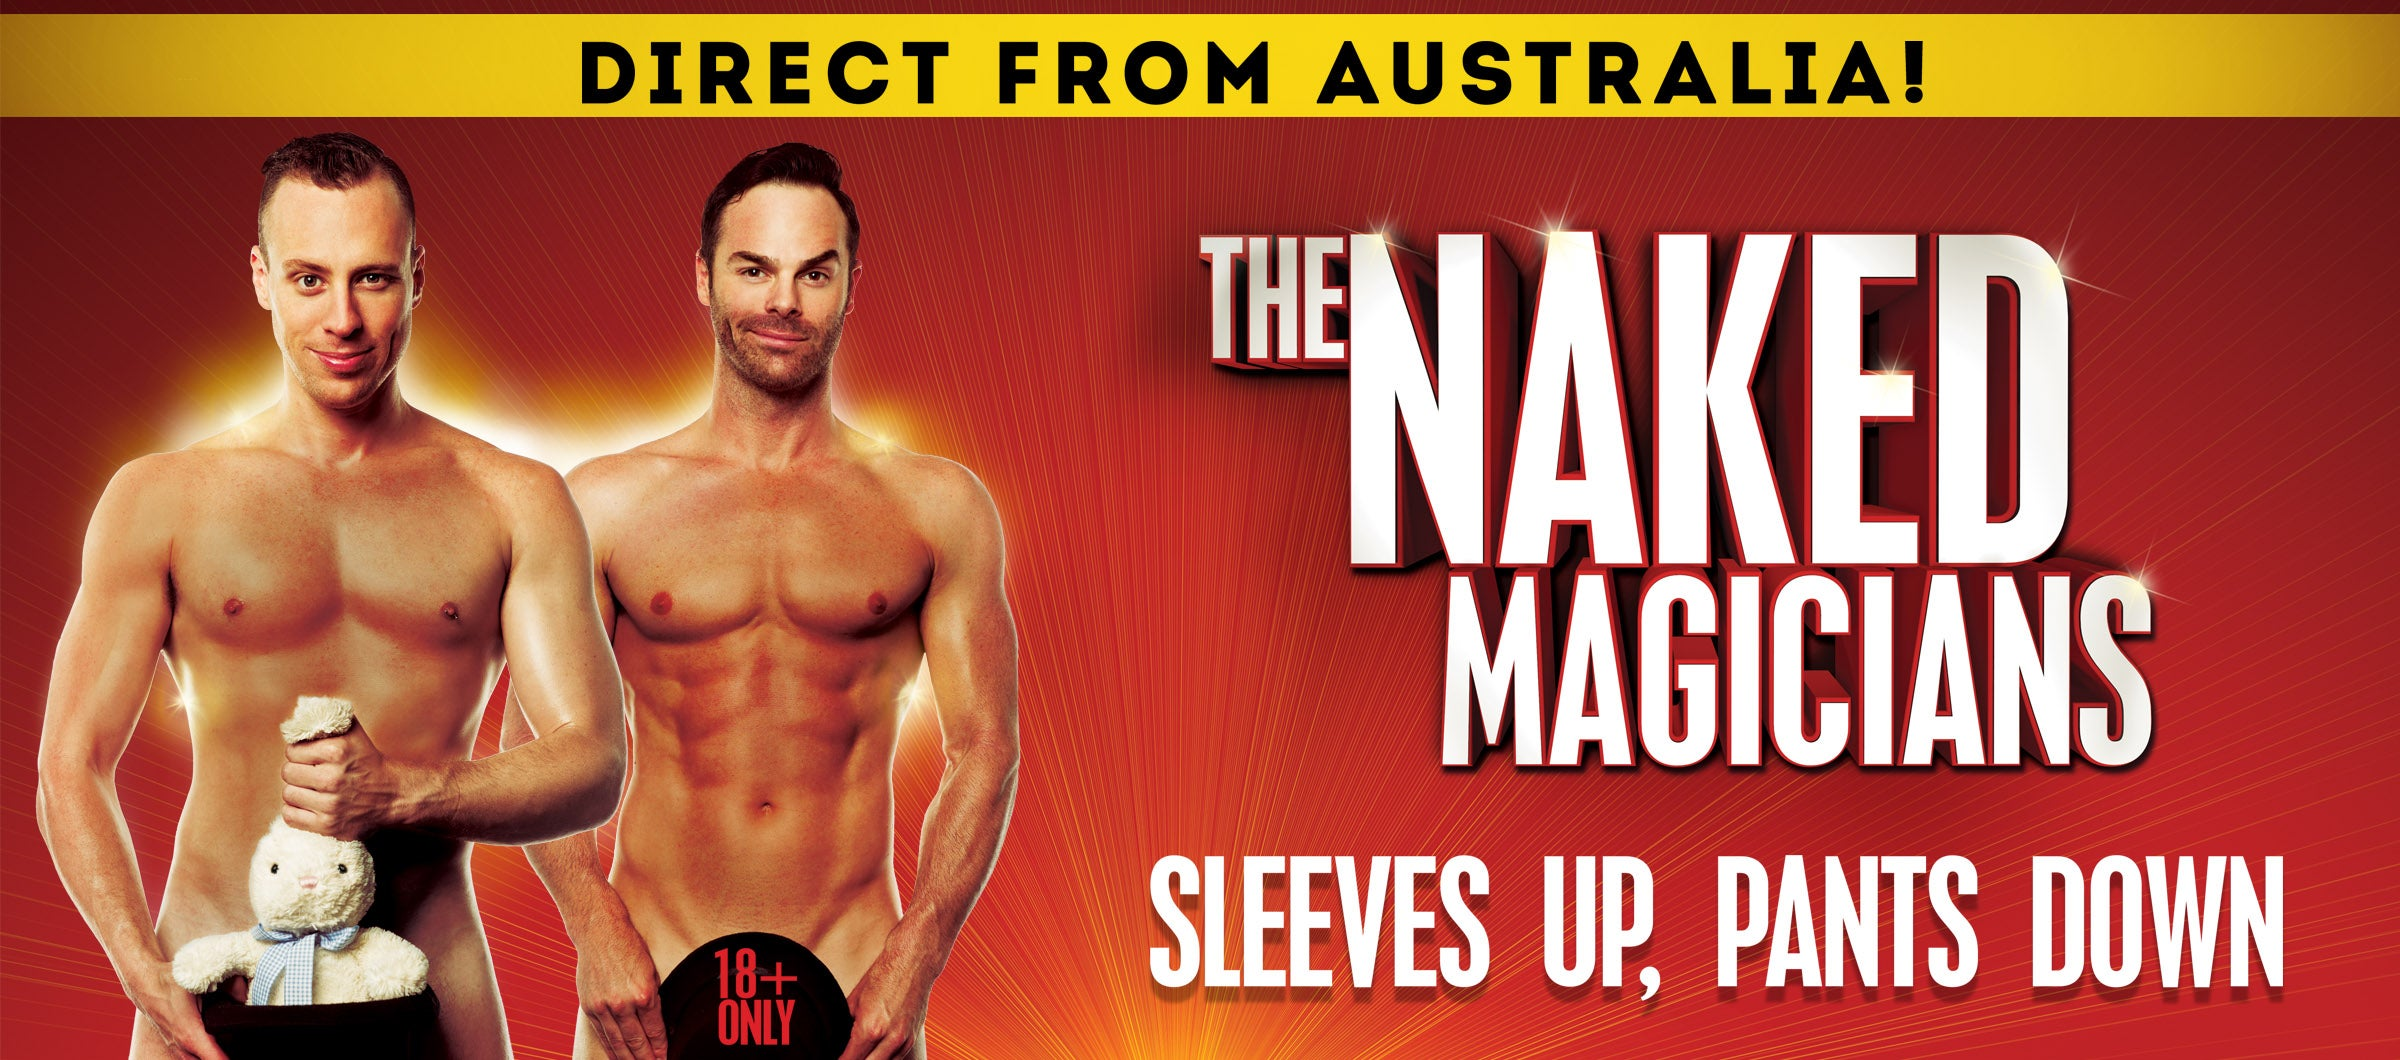 Pictures naked magicians #9